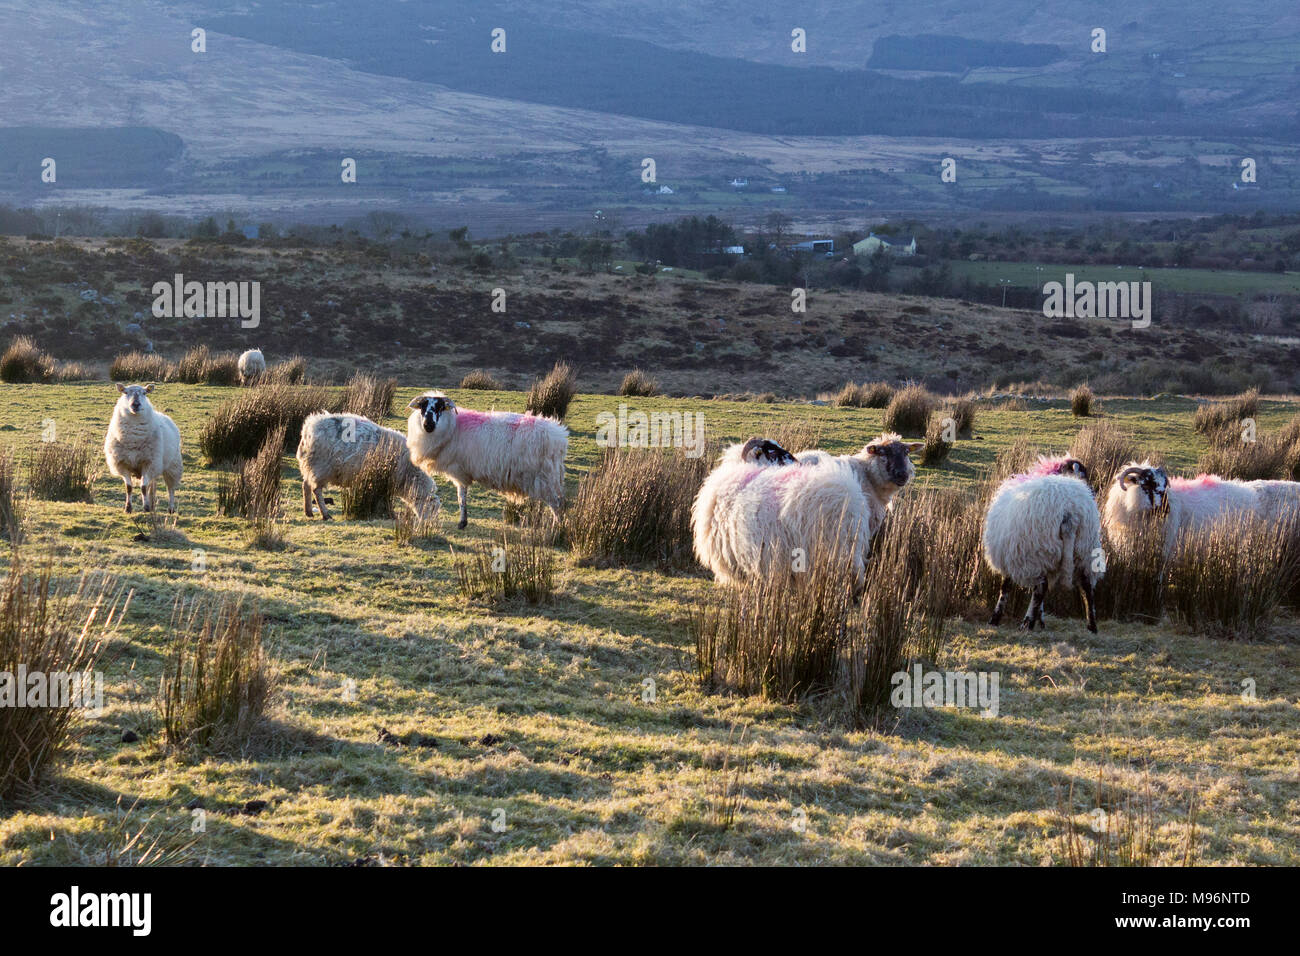 Sheep in a field on a Spring Evening on the Dingle Peninsula in County Kerry, Ireland - Stock Image